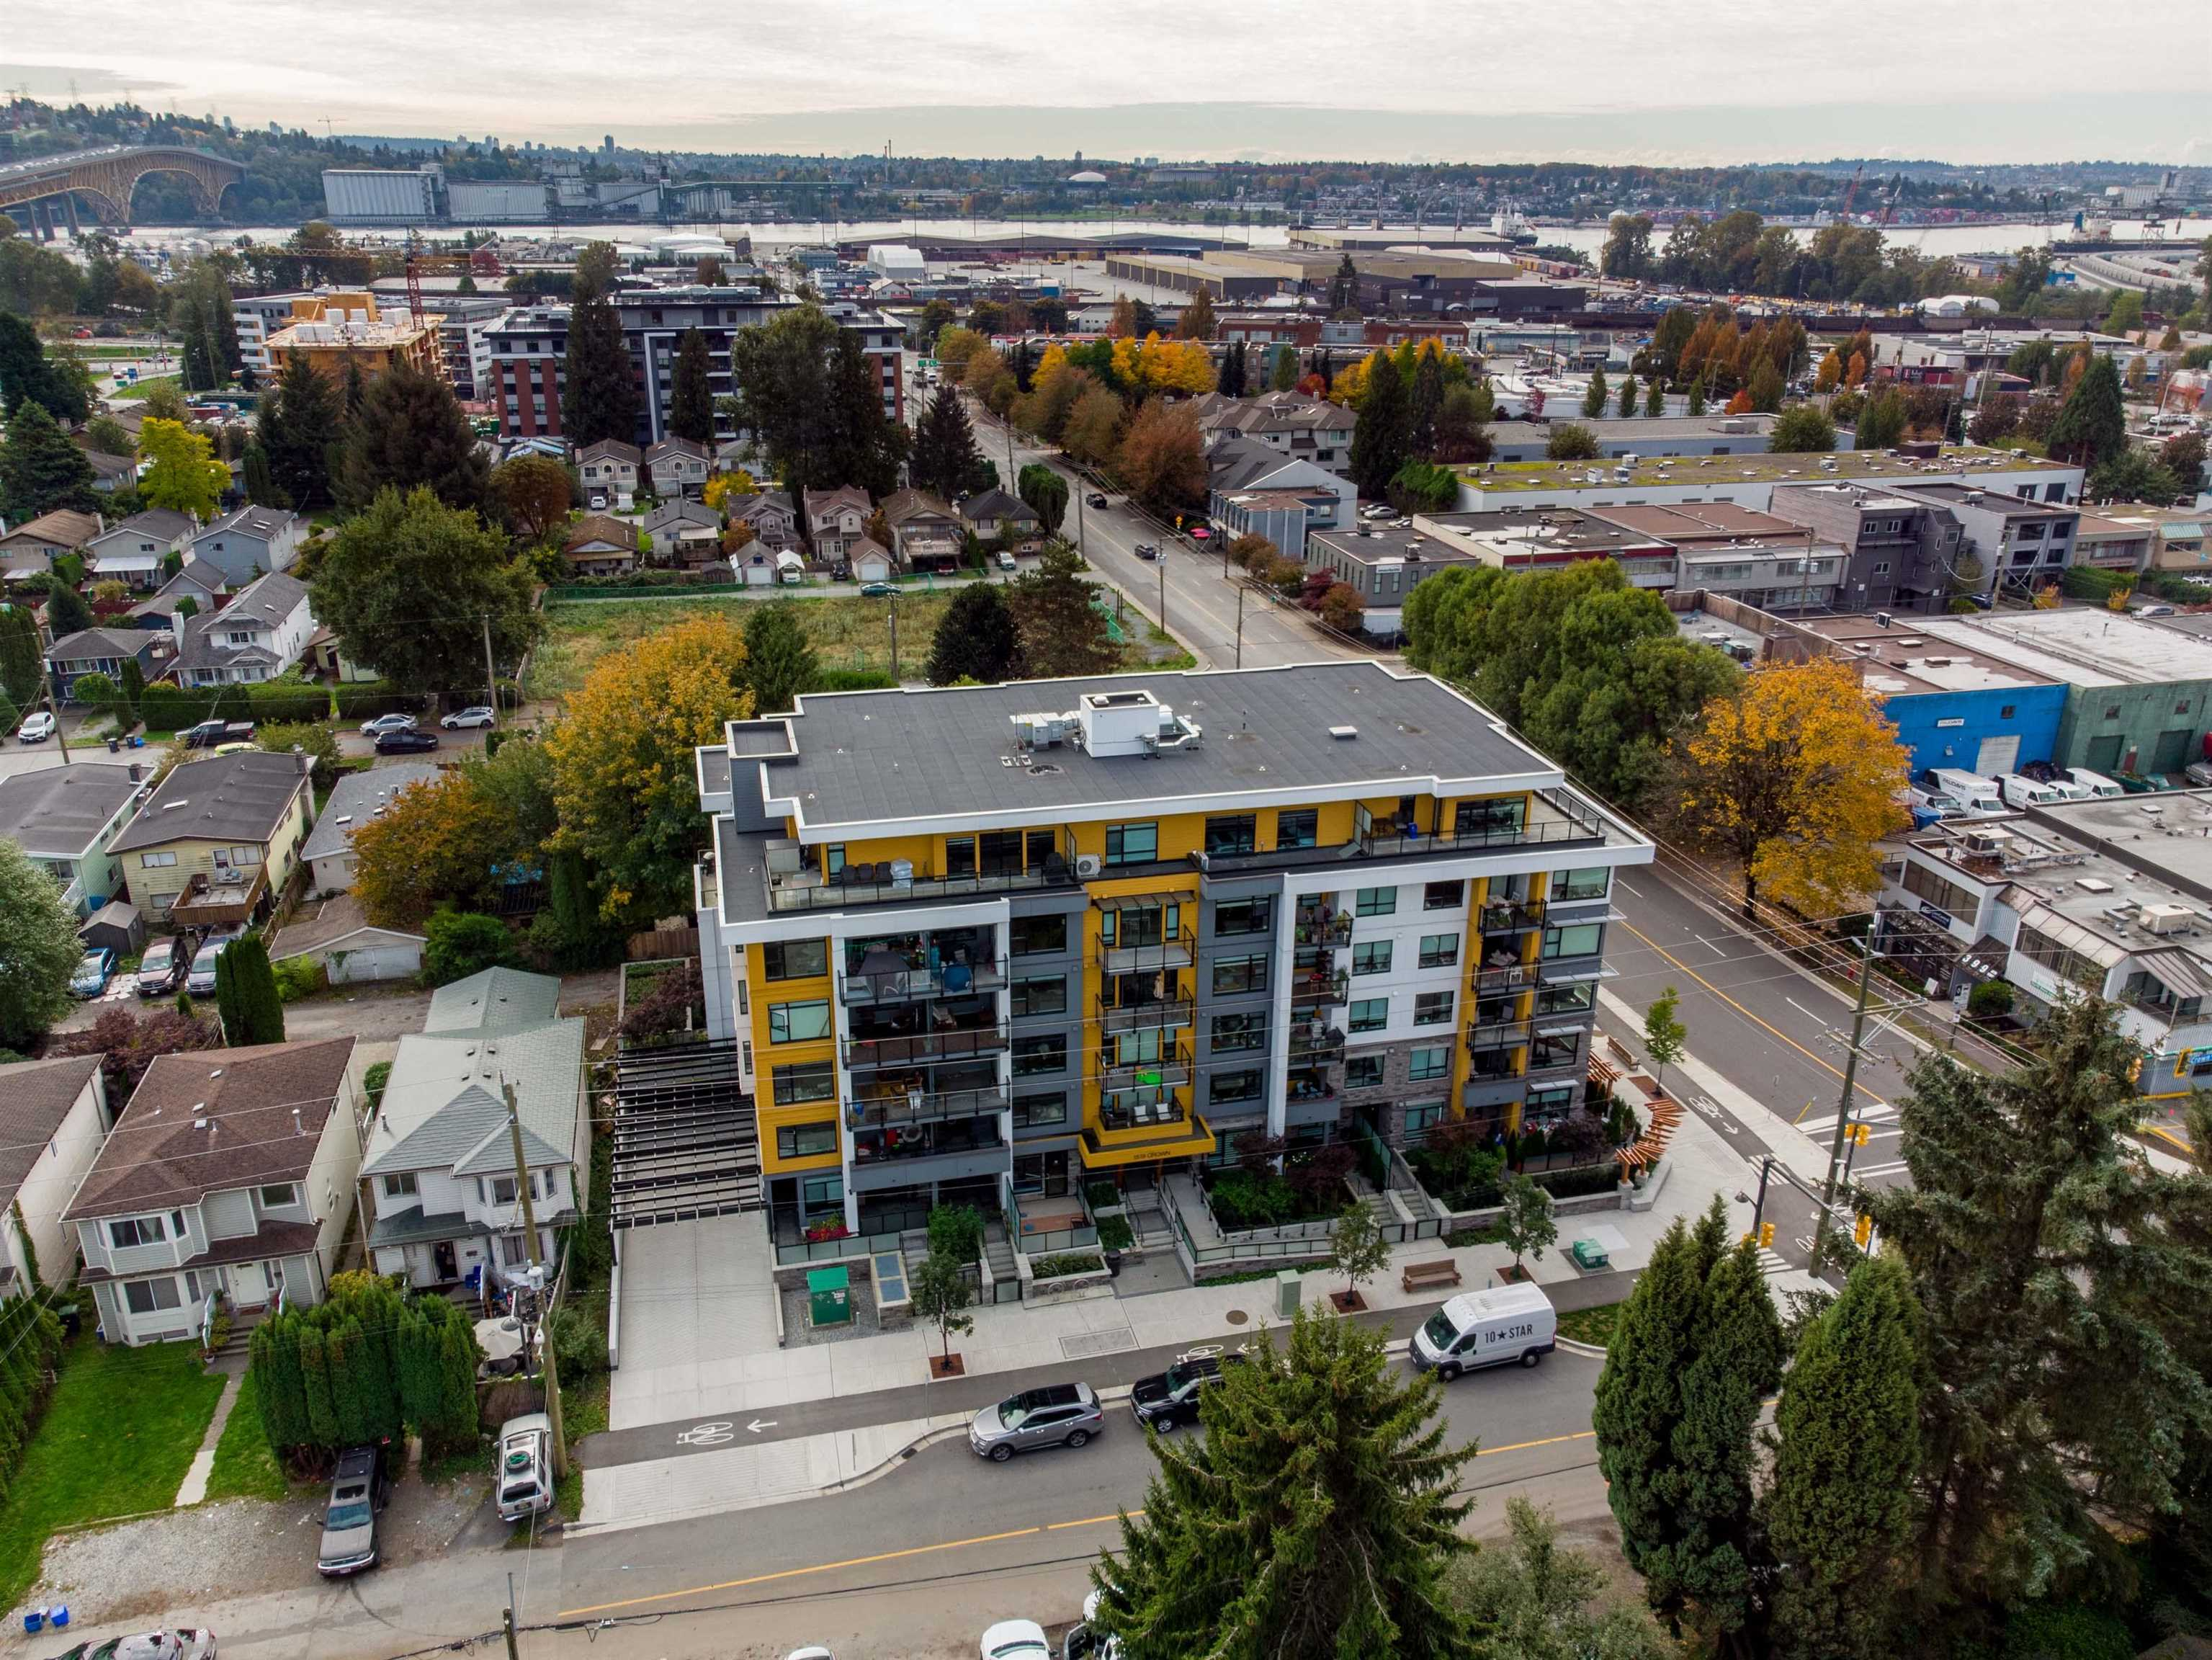 102 1519 CROWN STREET - Lynnmour Apartment/Condo for sale, 3 Bedrooms (R2625295) - #23